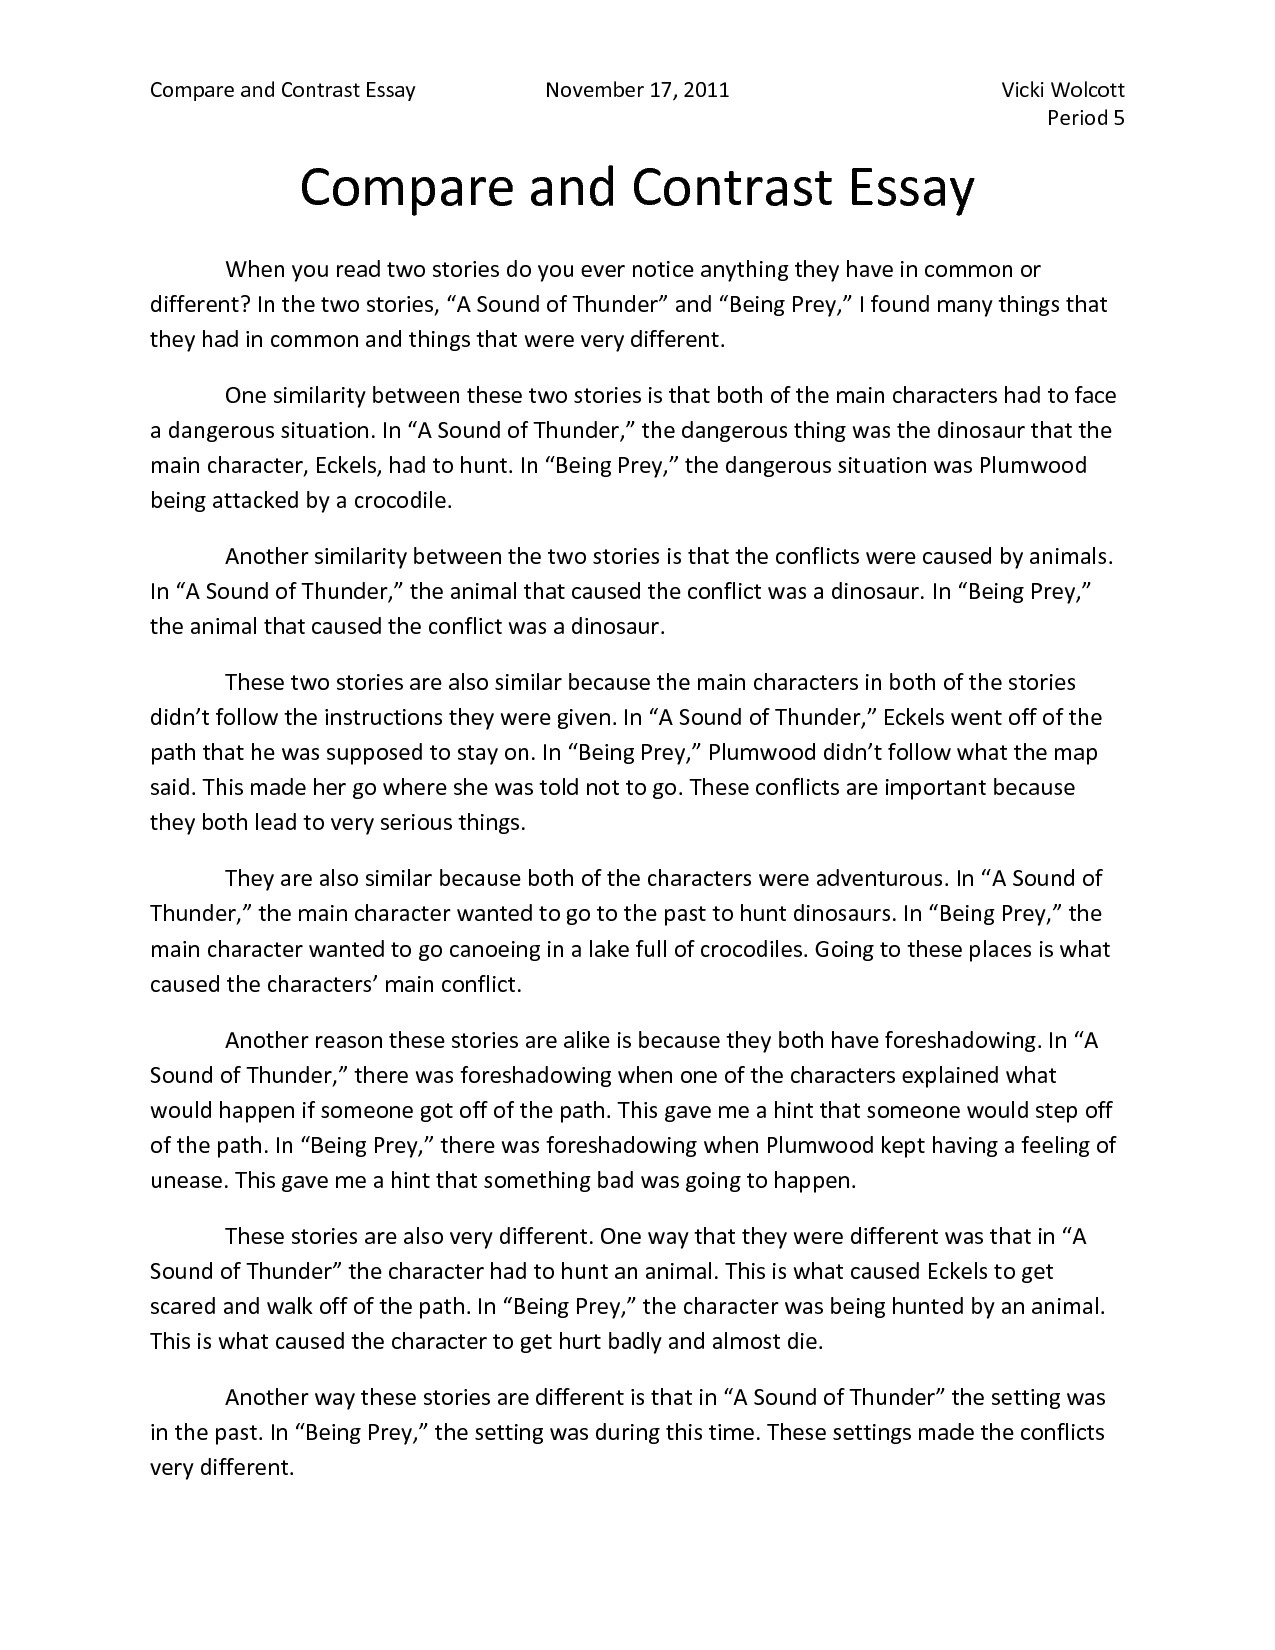 005 Essay Example Comparison Examples And Contrast Essays Ideas Maus Phenomenal Compare Block Format College Outline High School Full